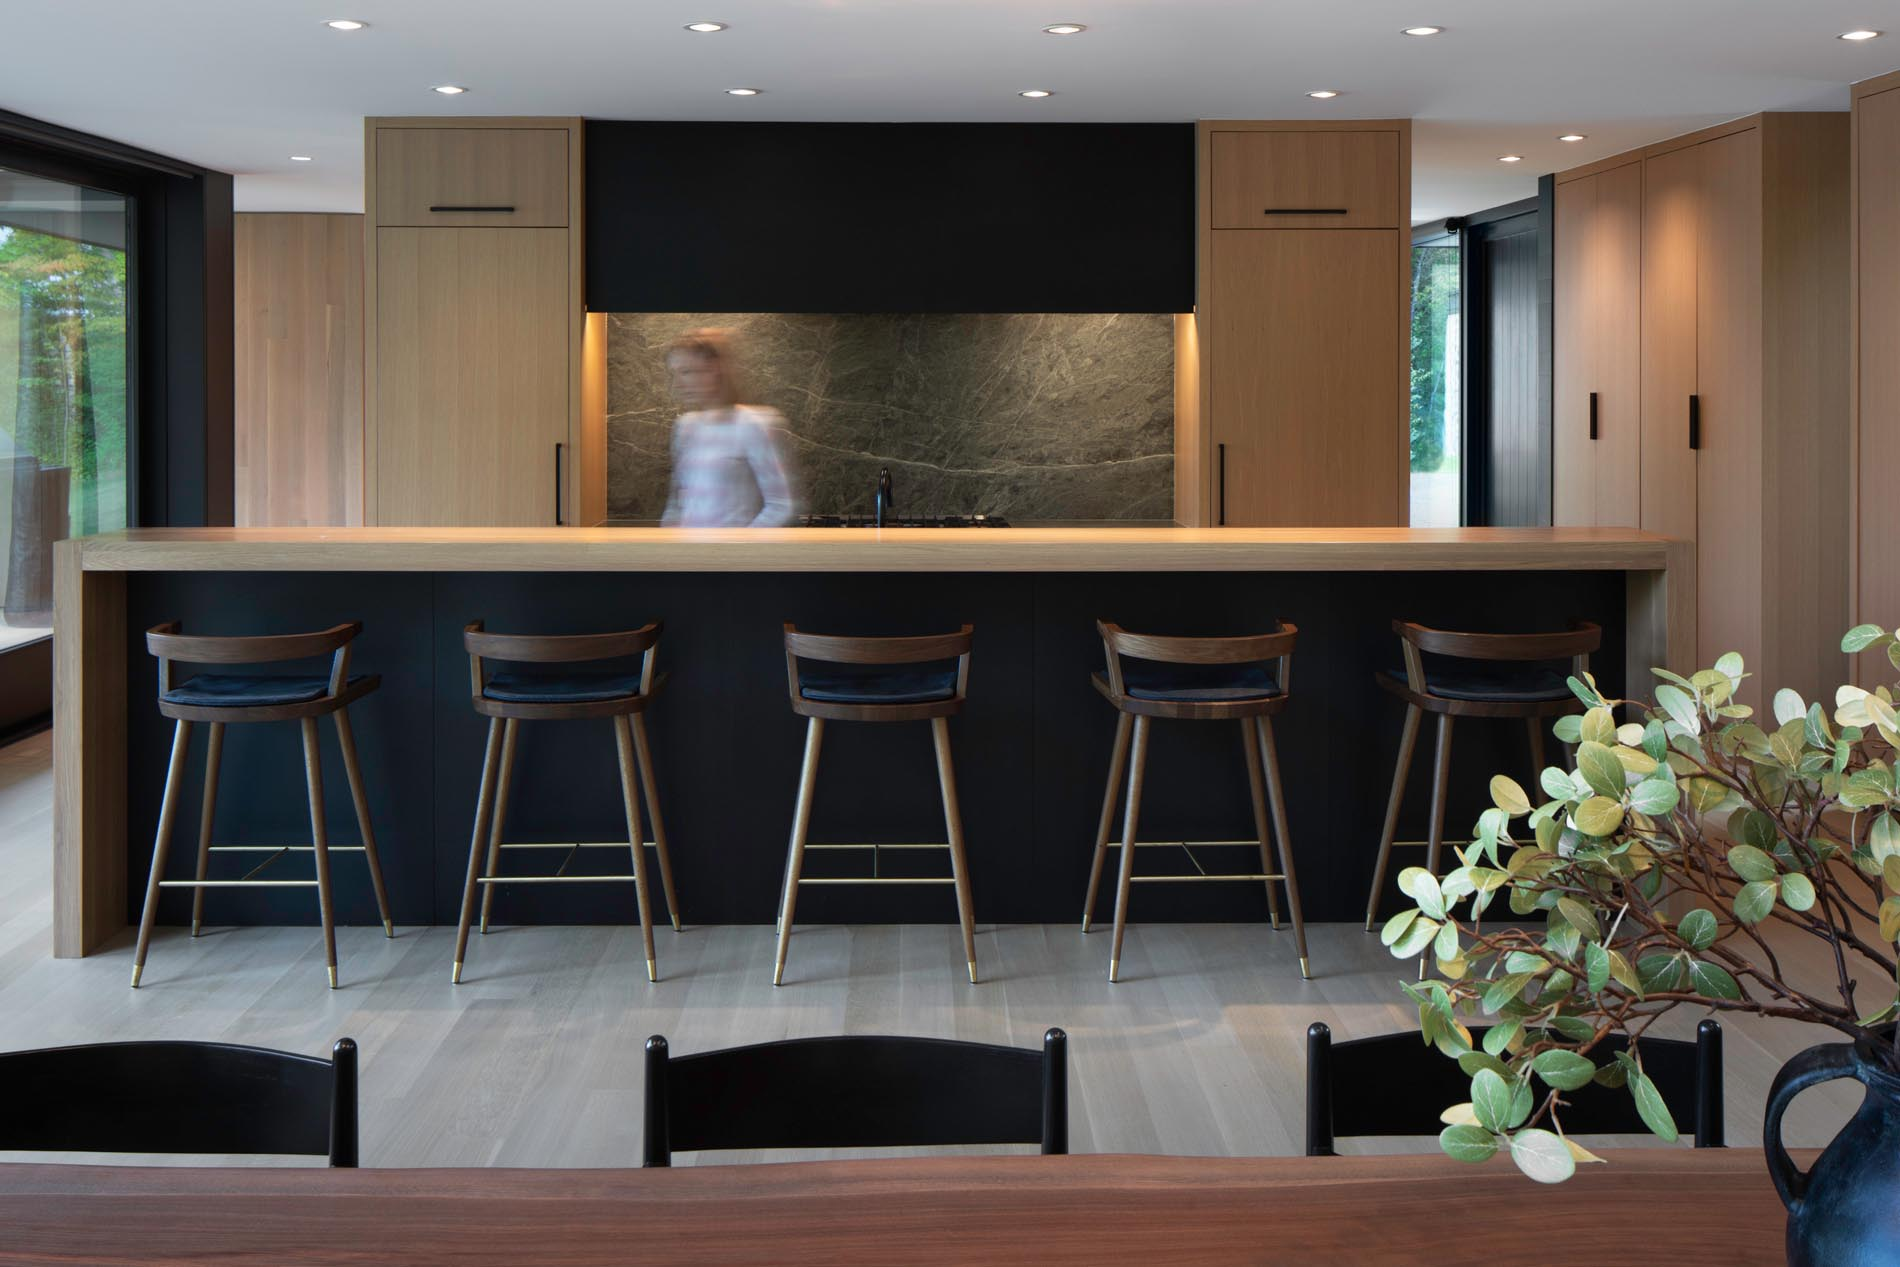 The design of the kitchen includes rift-sawn white oak cabinetry, a custom black metal hood, stone backsplash, and an island that's long enough to seat five.